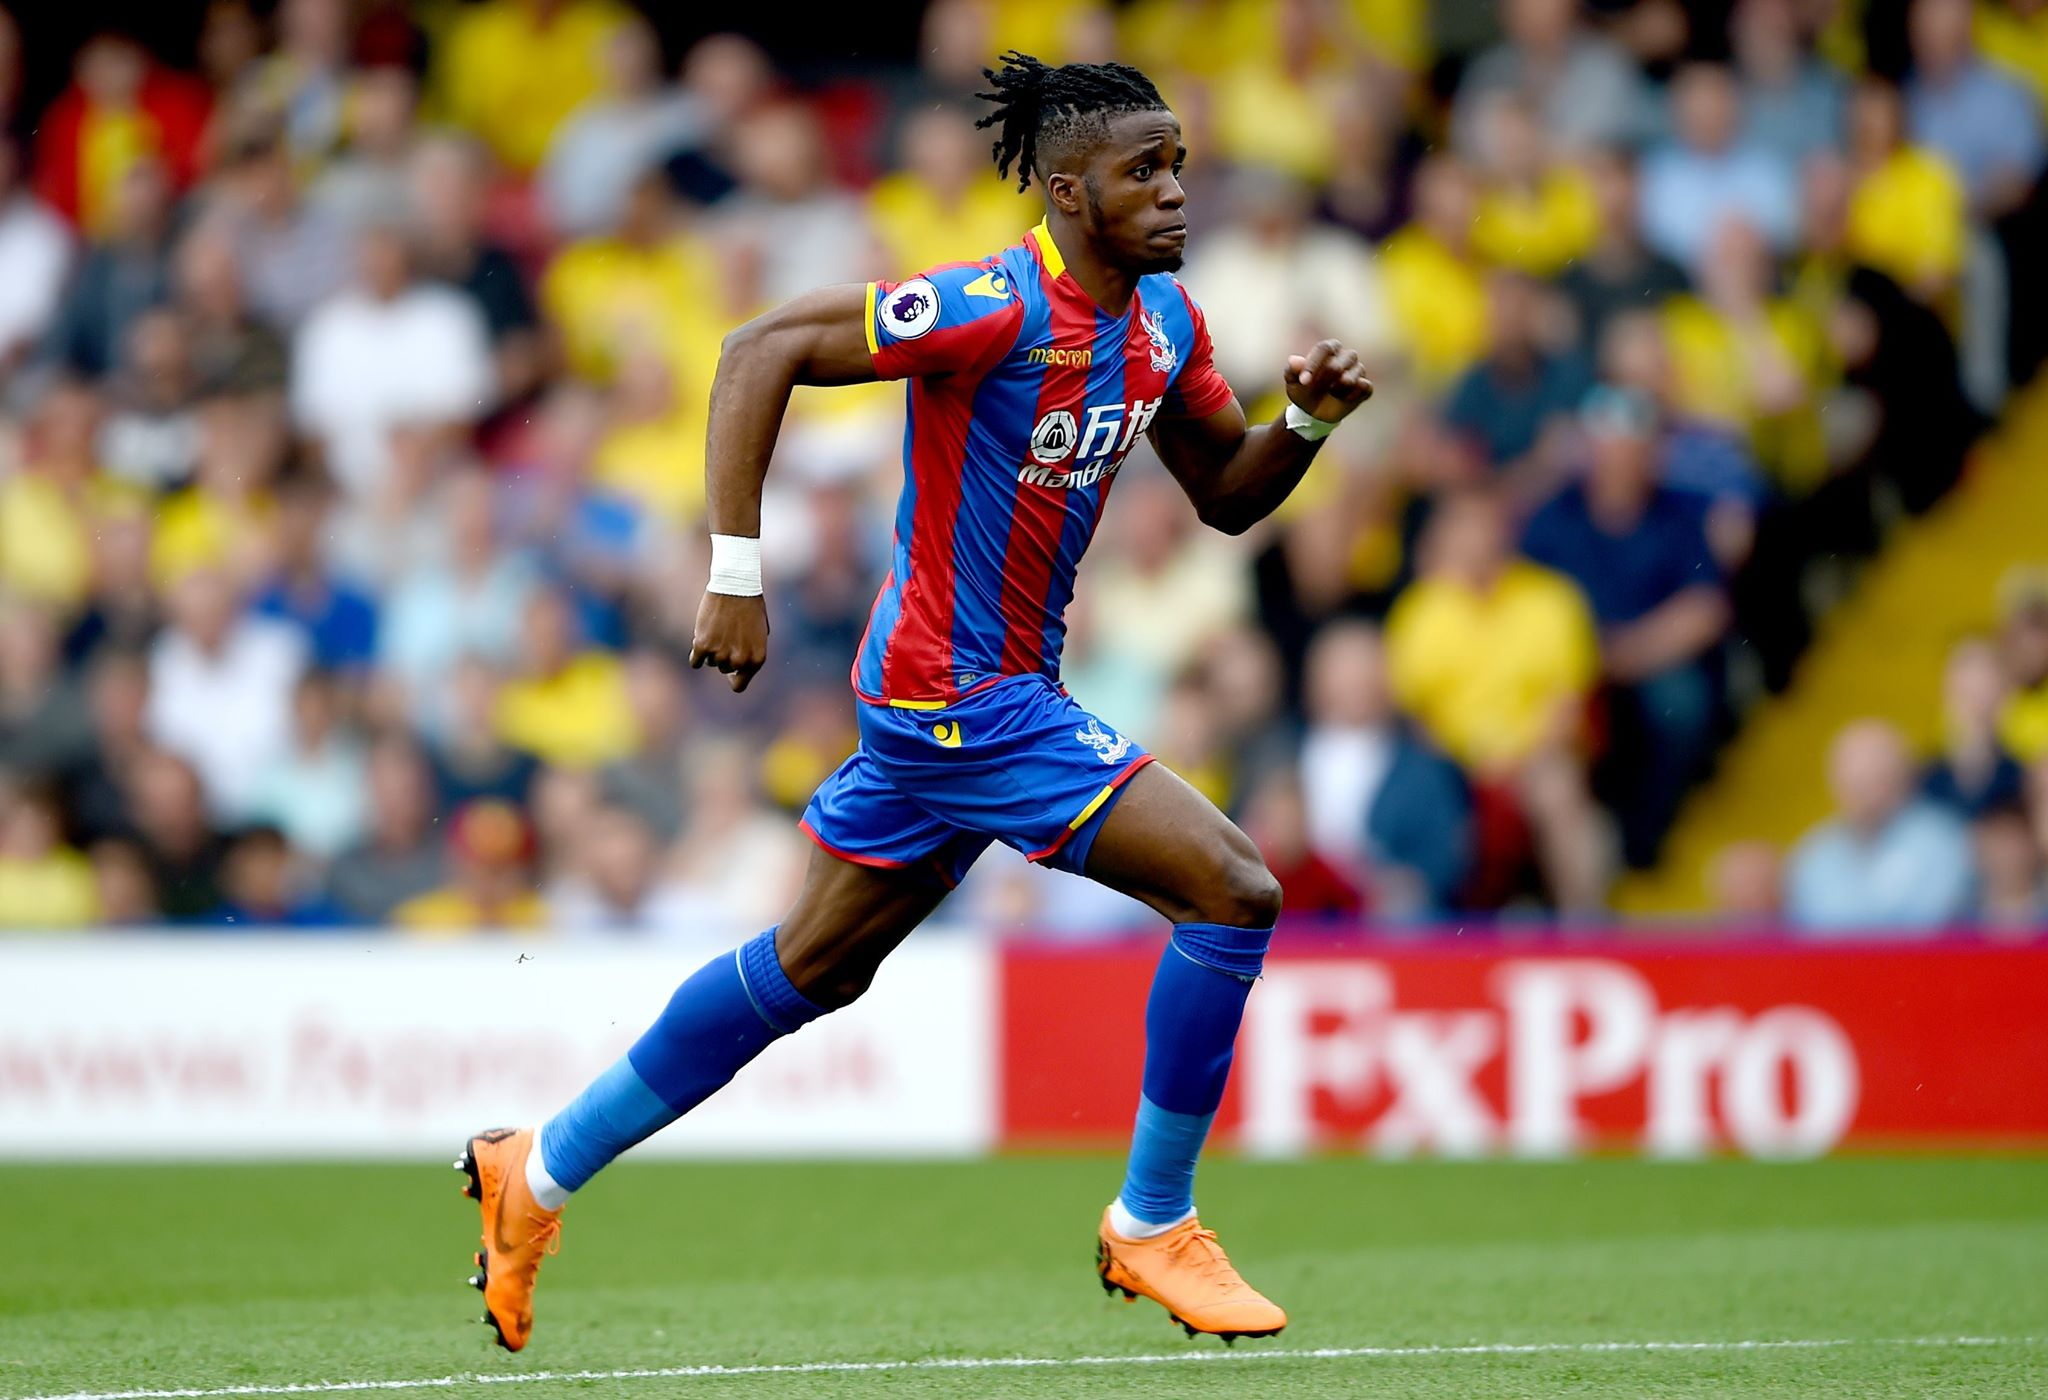 Zaha in action for Palace. Image: PA